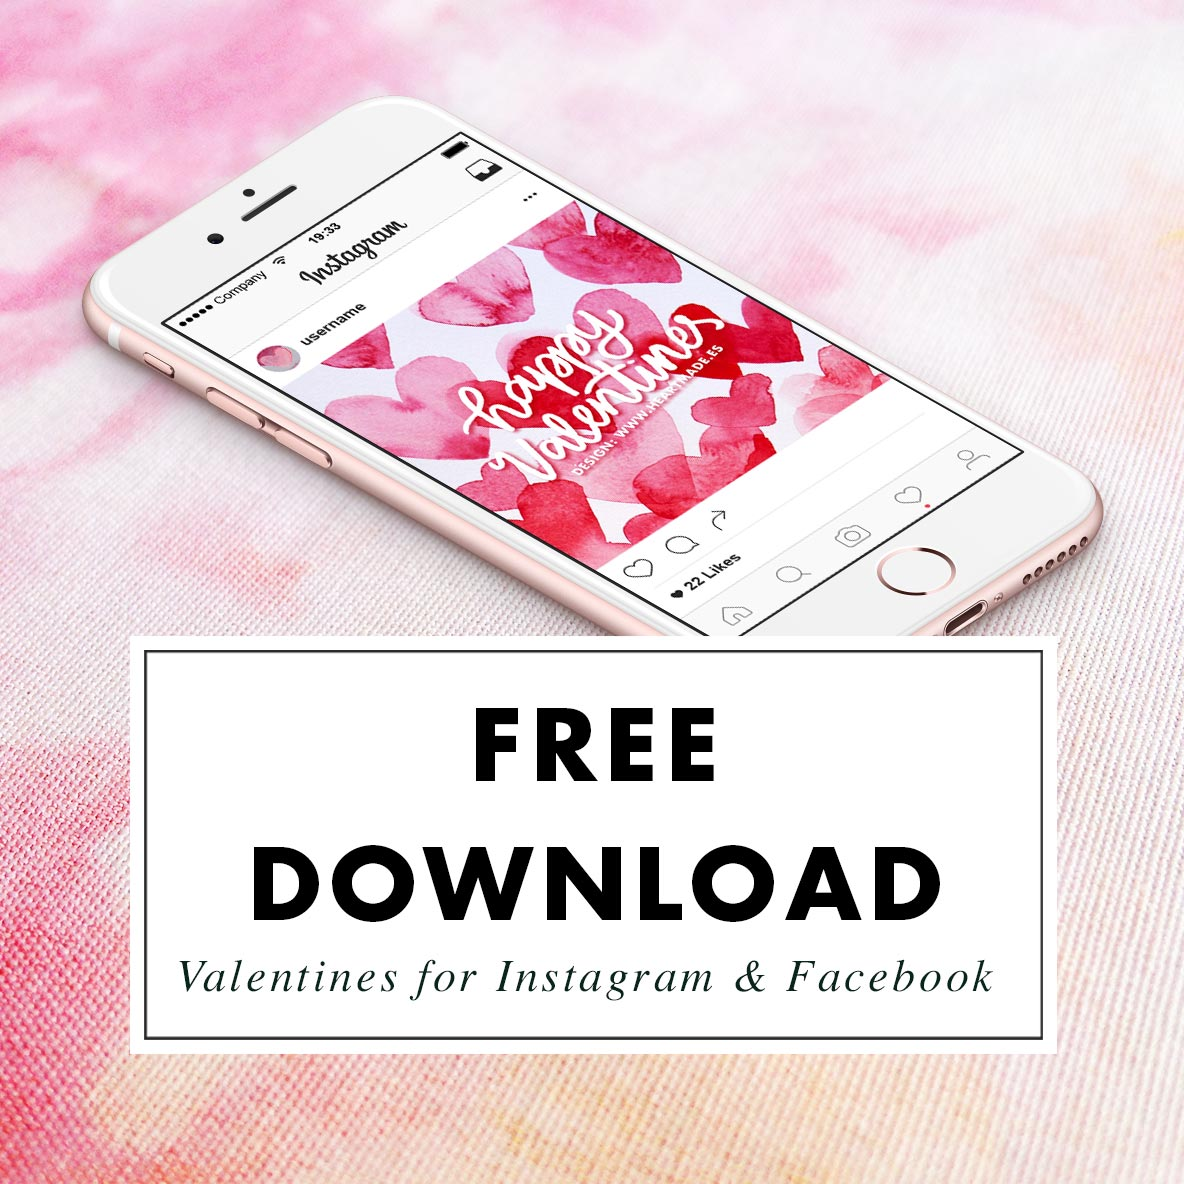 Valentines Day promotional images - FREE download!